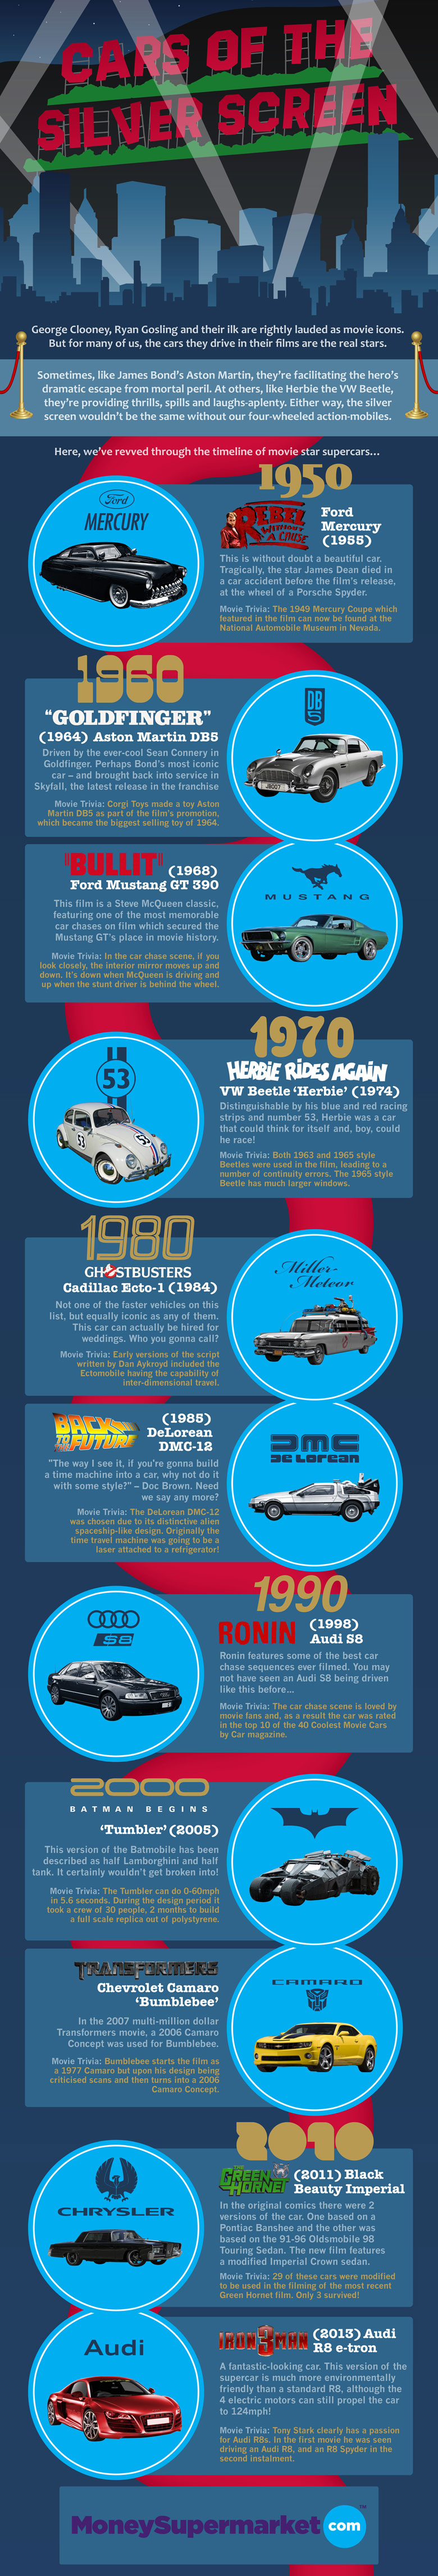 Cars of the Silver Screen